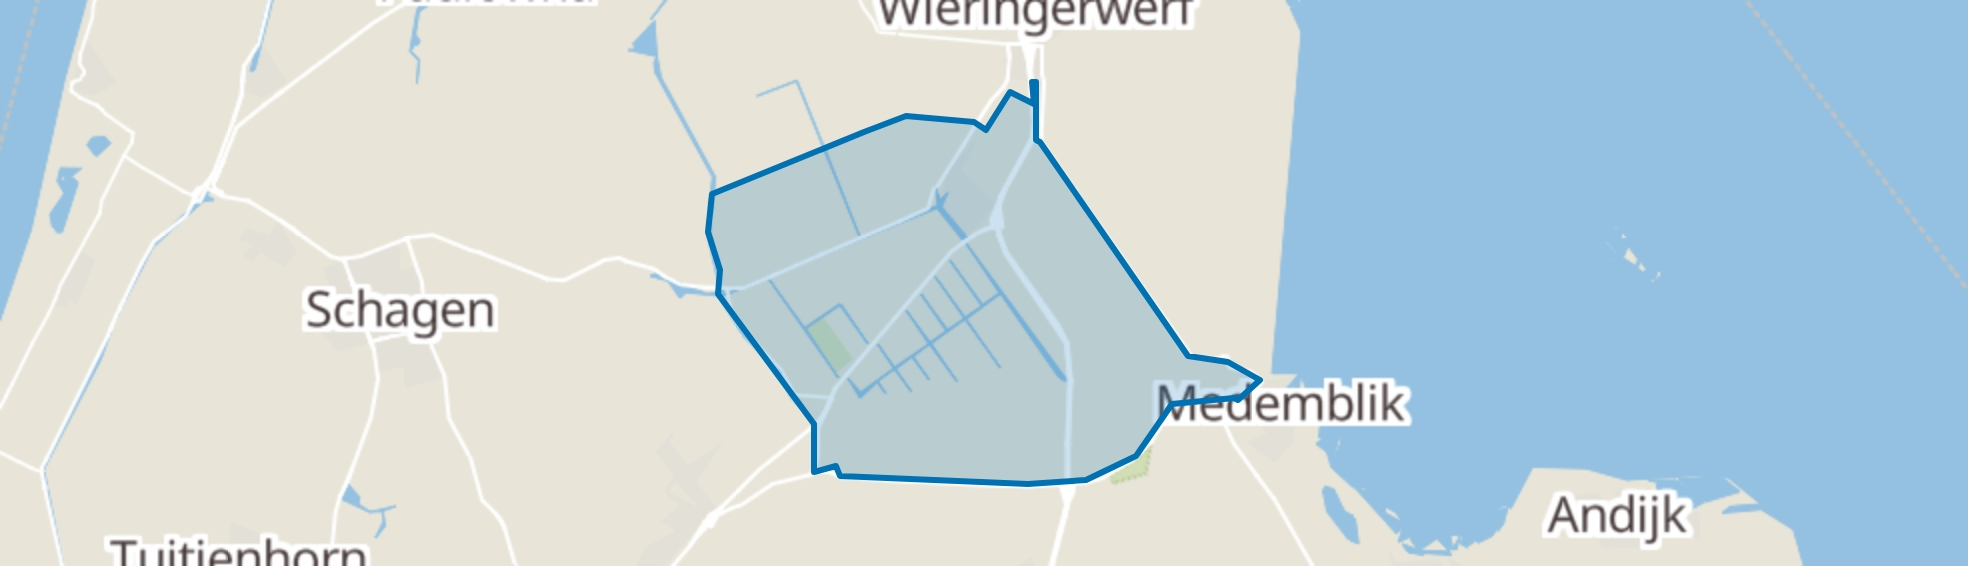 Middenmeer map